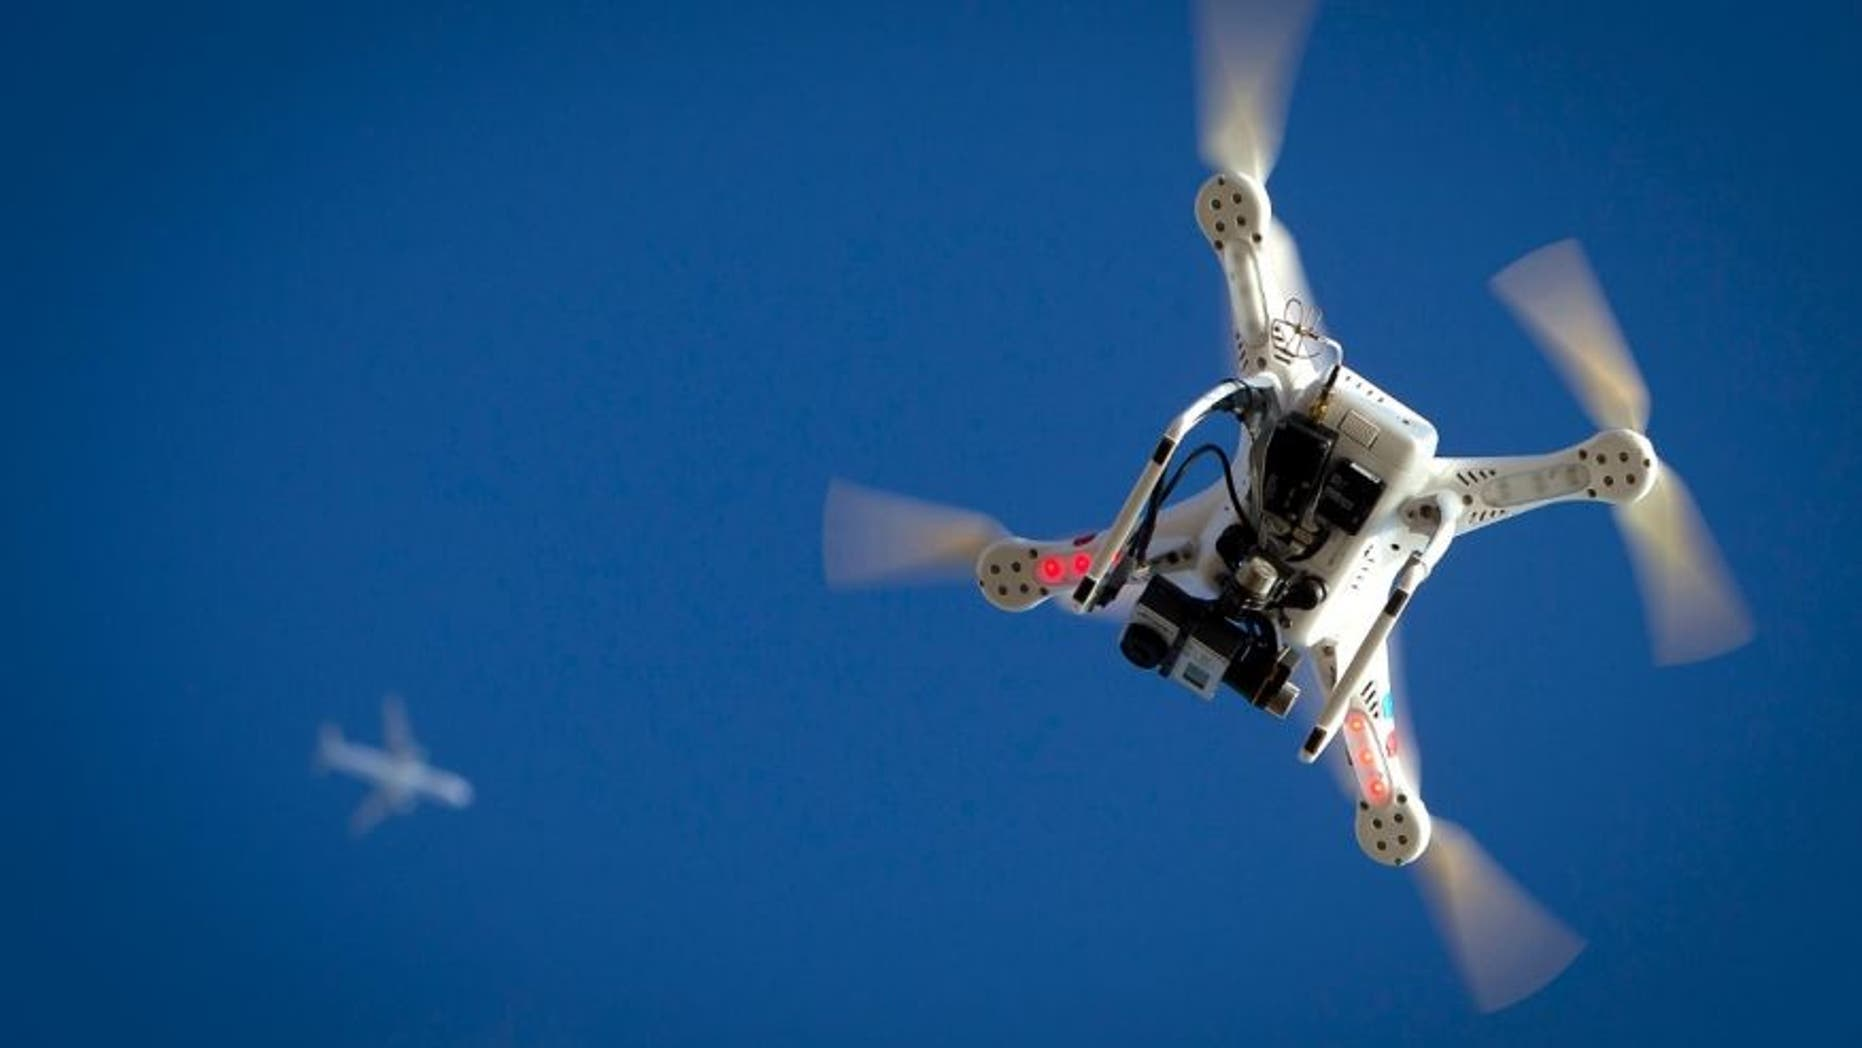 FILE: A drone, similar to the one photographed, was used by a Utah couple to spy on neighbors, police say